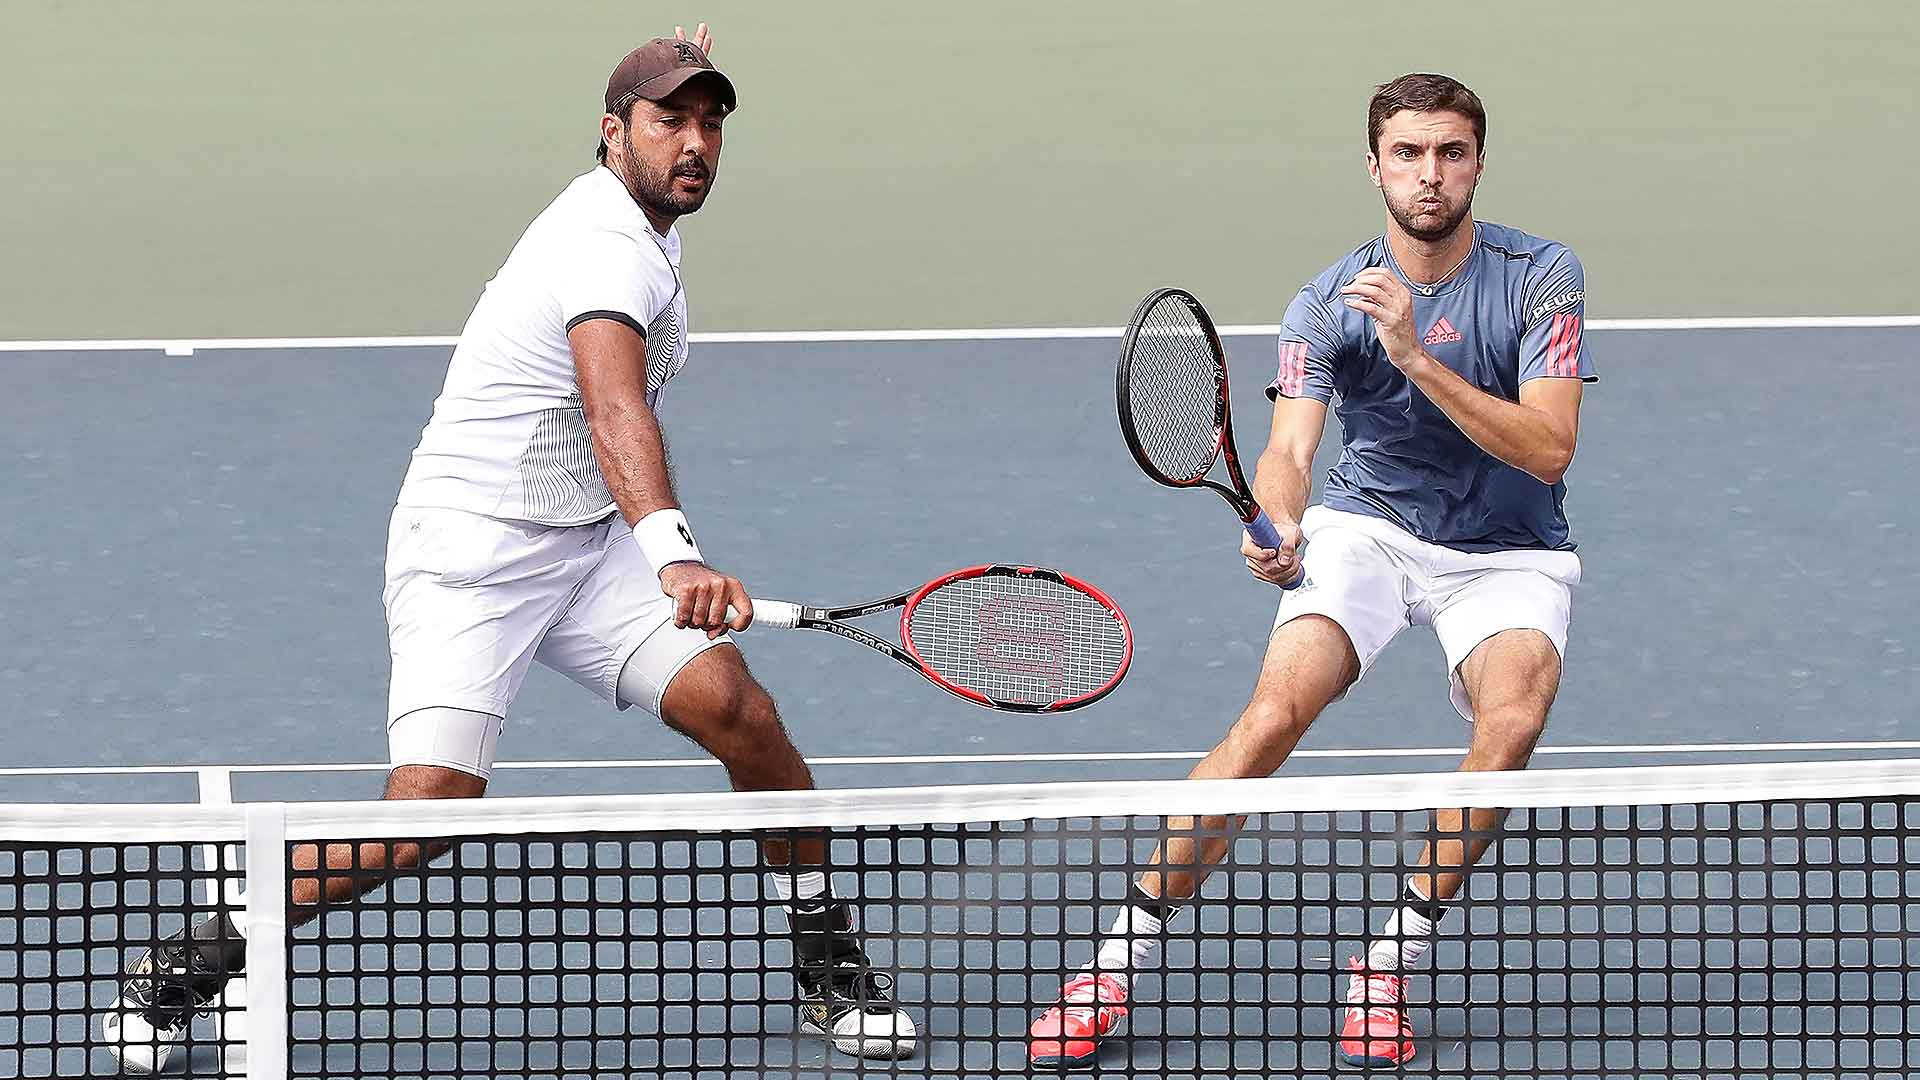 Aisam-Ul-Haq Qureshi and Gilles Simon move into the semi-finals.